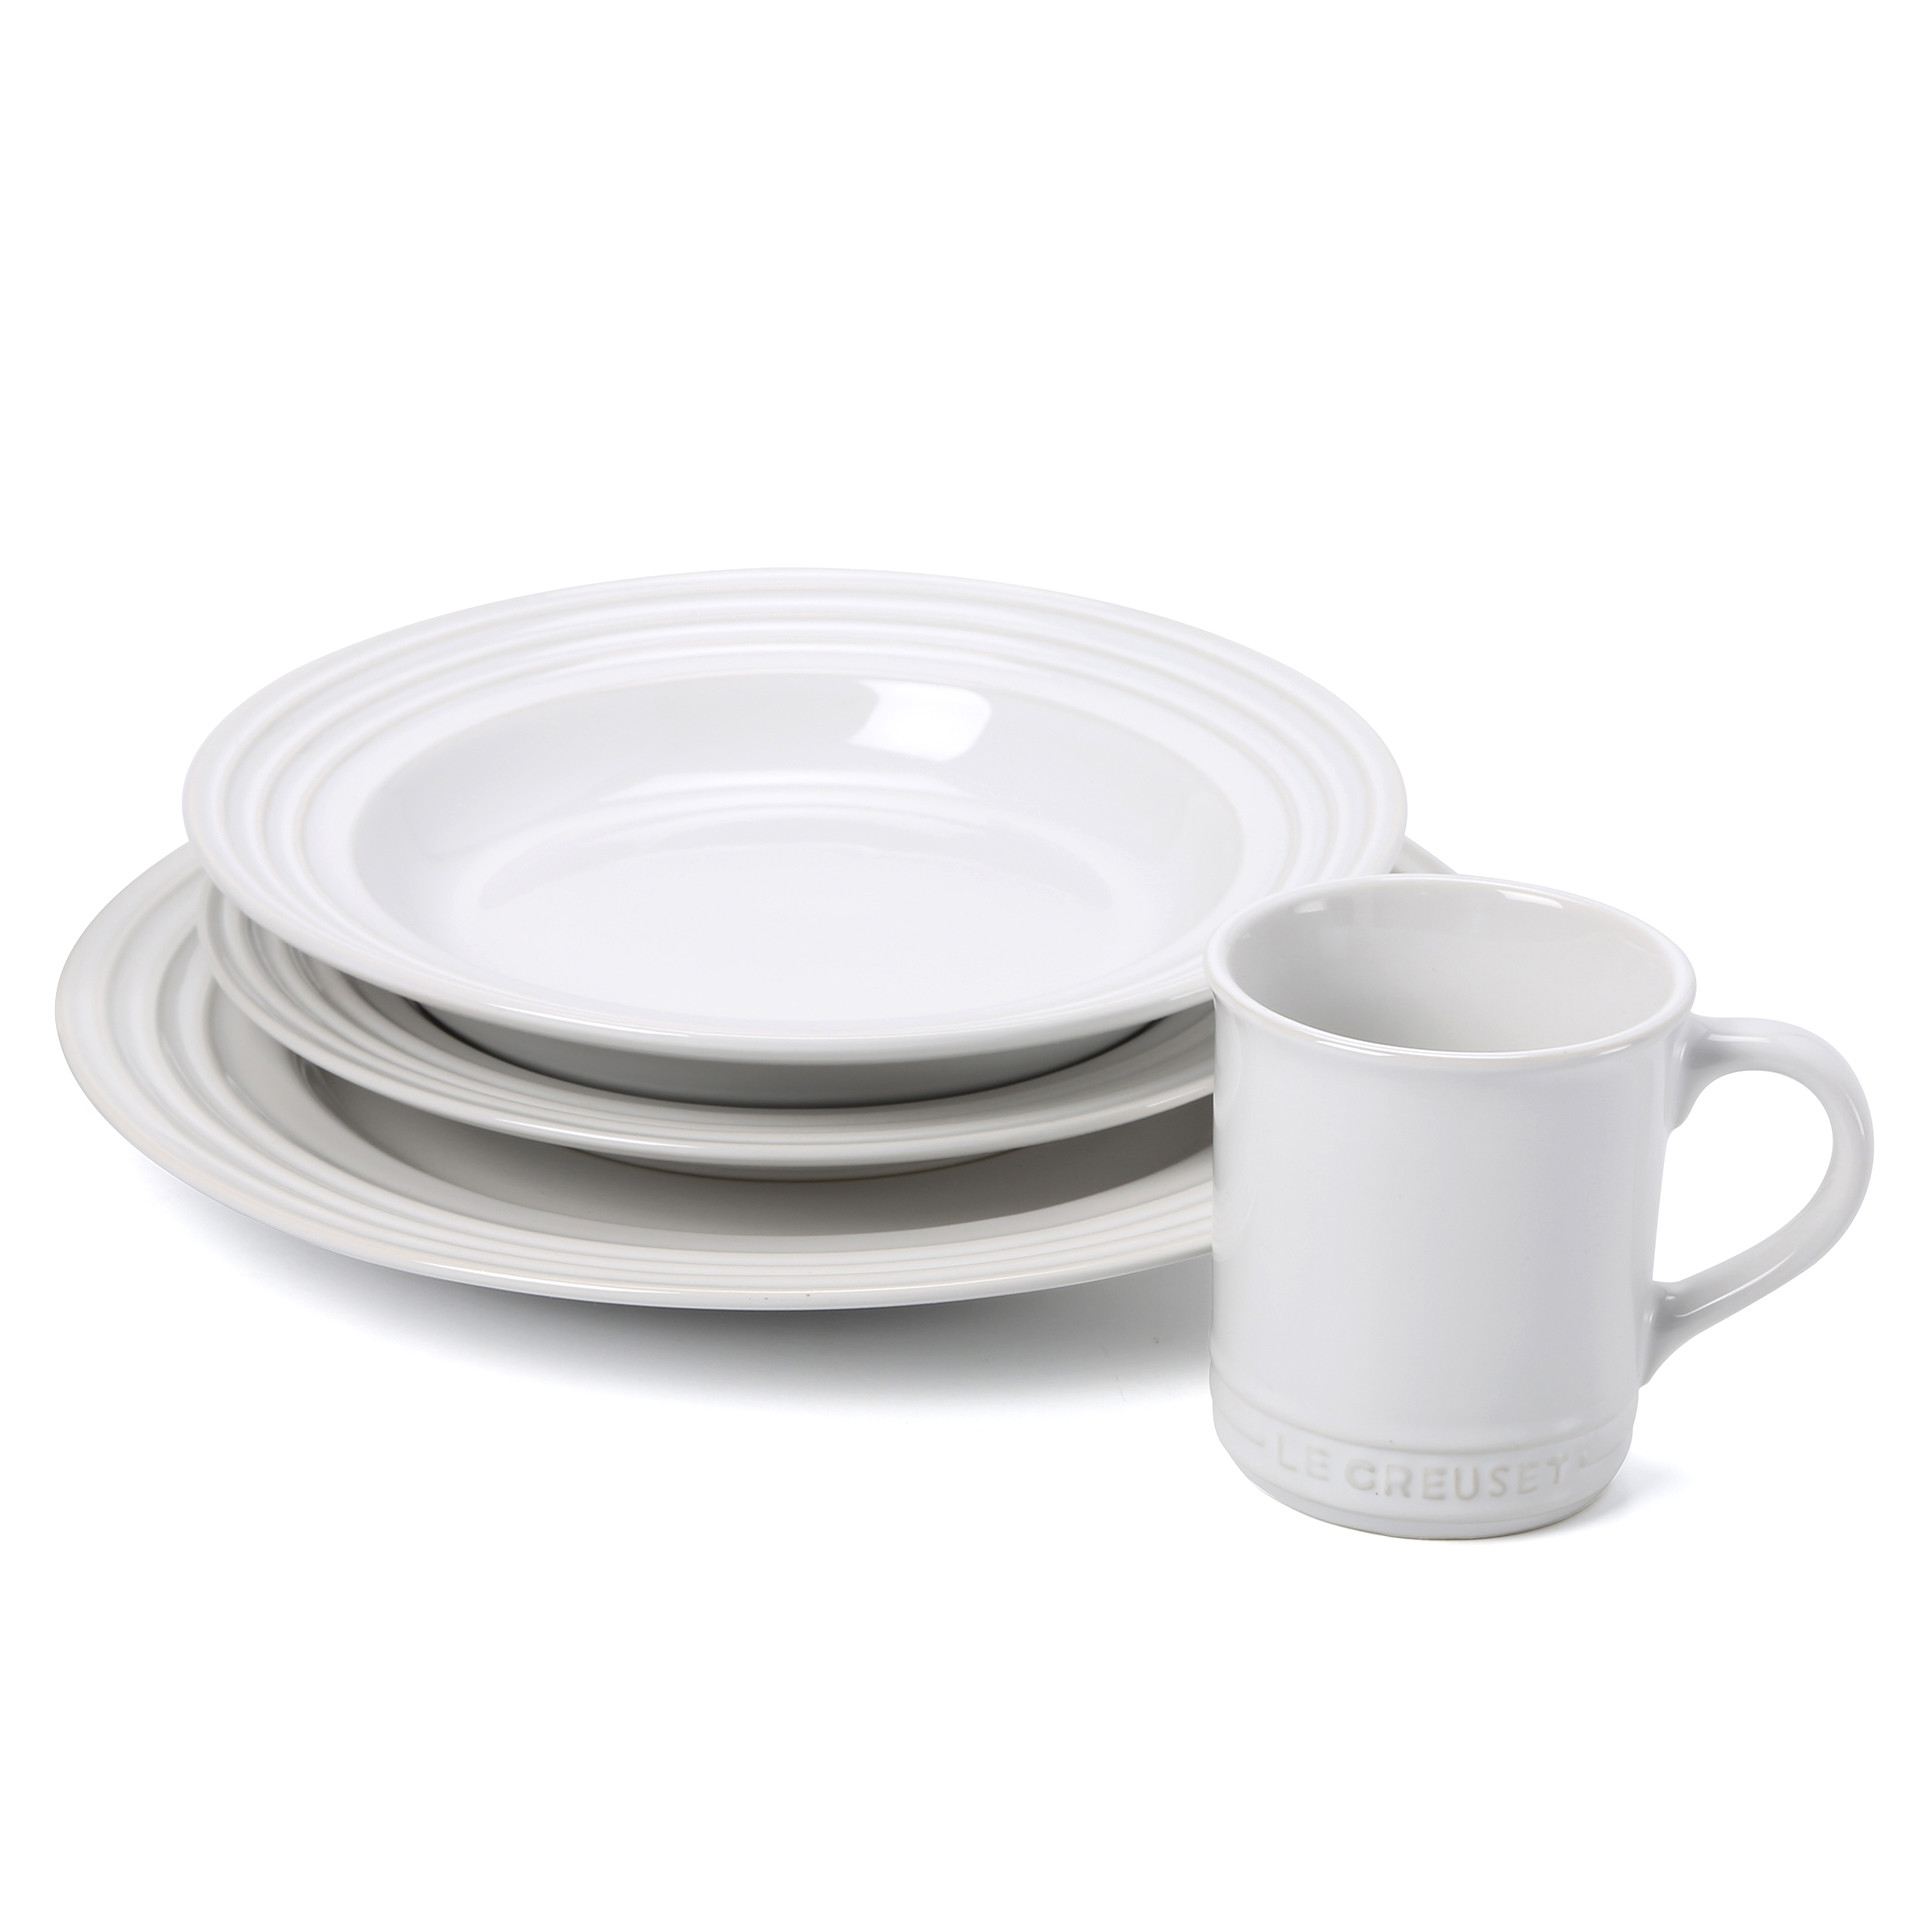 Threshold Dinnerware Set | Stoneware Dinnerware Sets | Square Dinnerware Sets